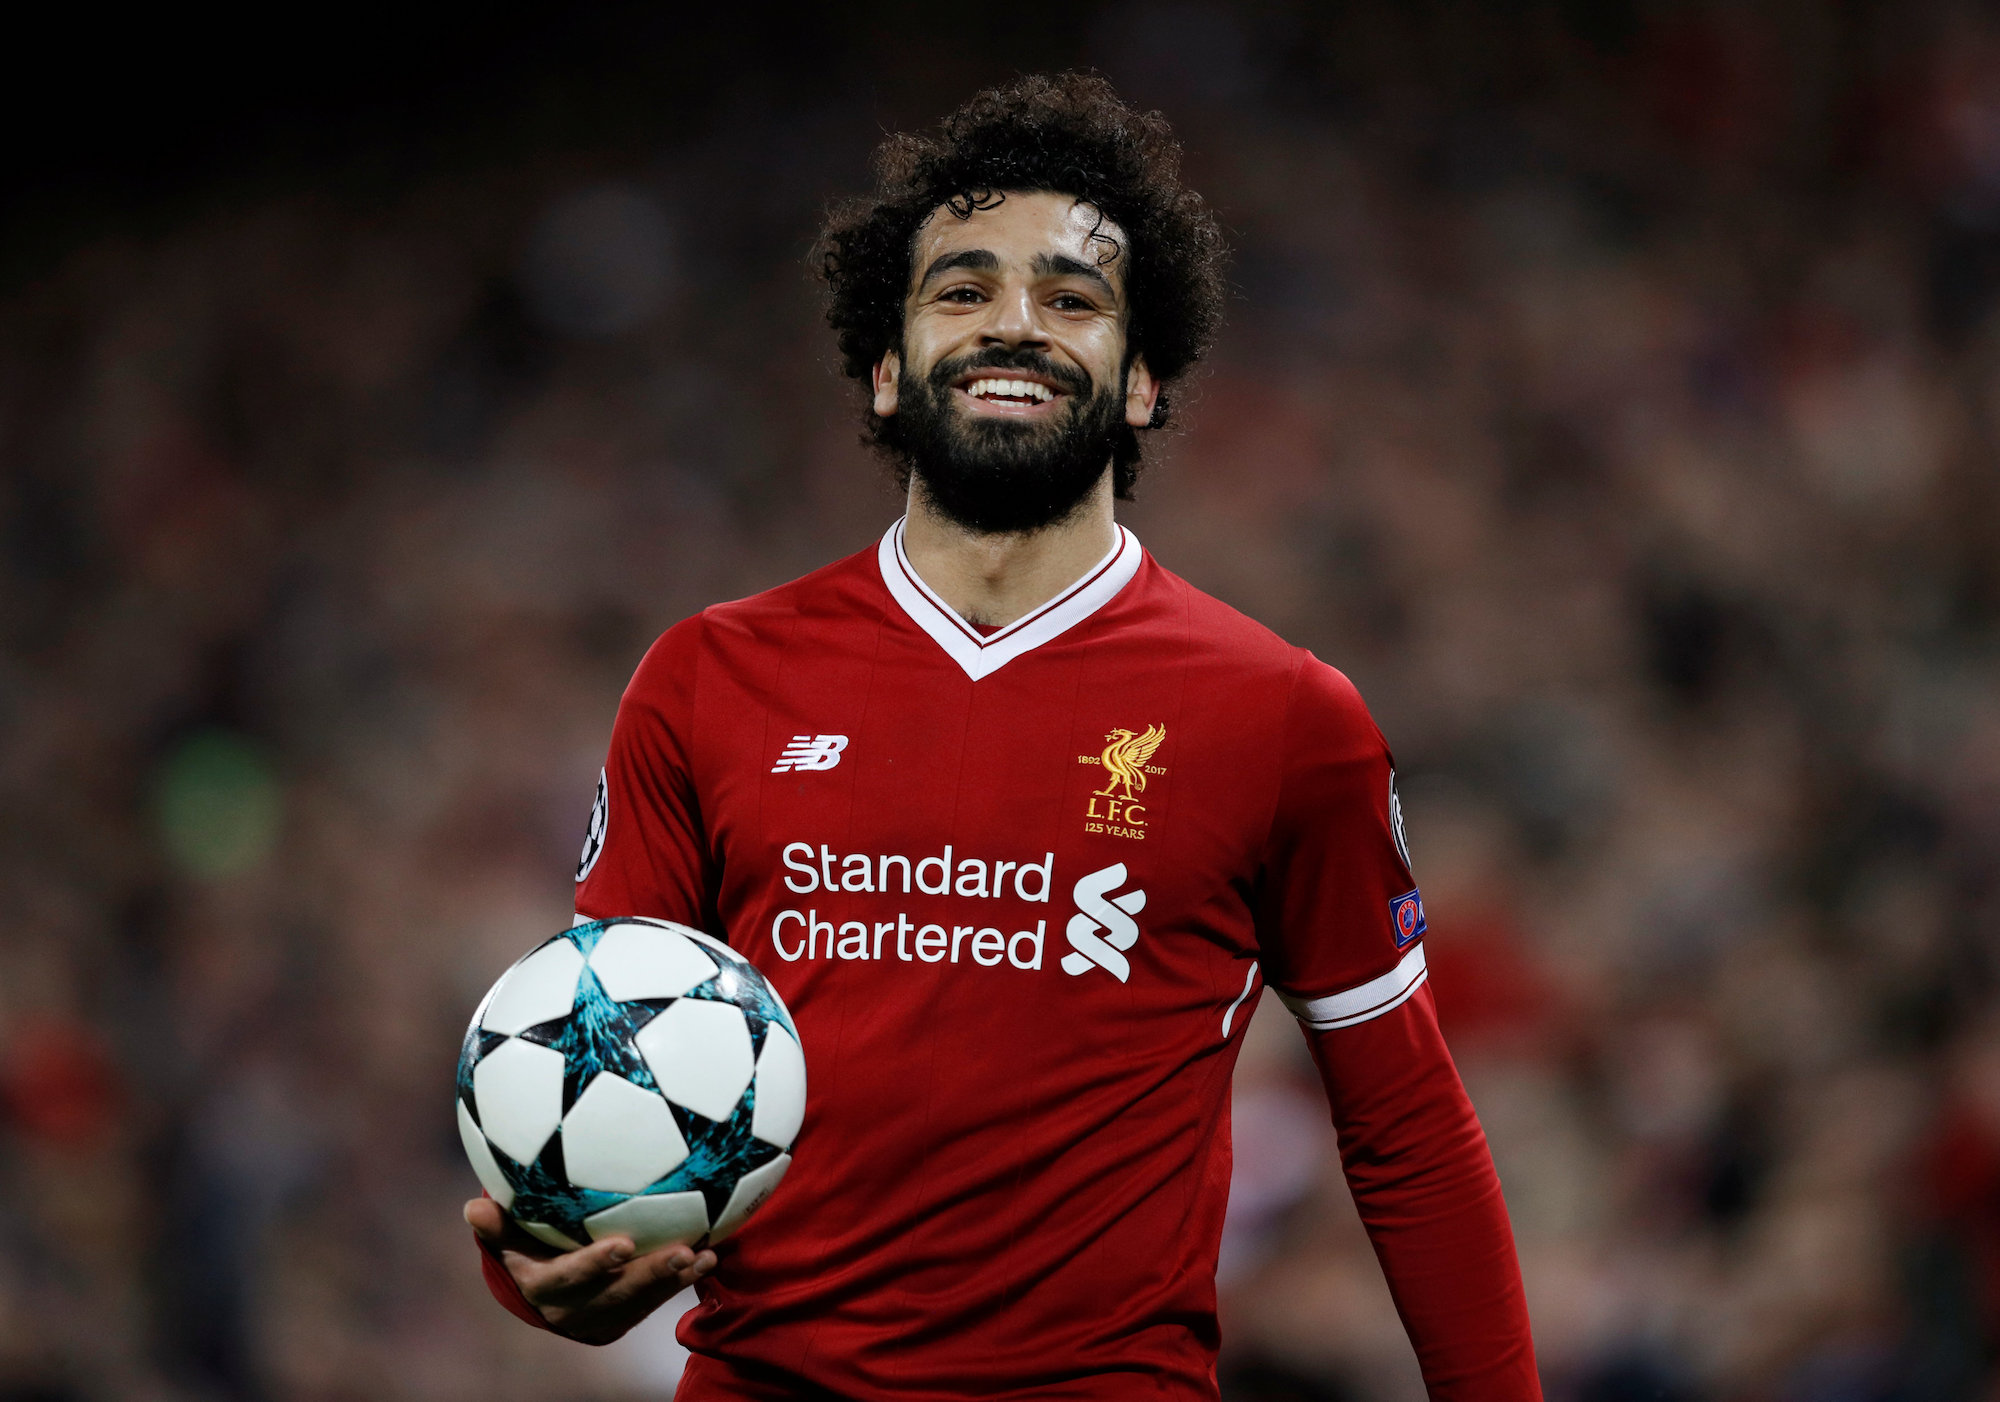 Soccer Football - Champions League - Liverpool vs Spartak Moscow - Anfield, Liverpool, Britain - December 6, 2017   Liverpool